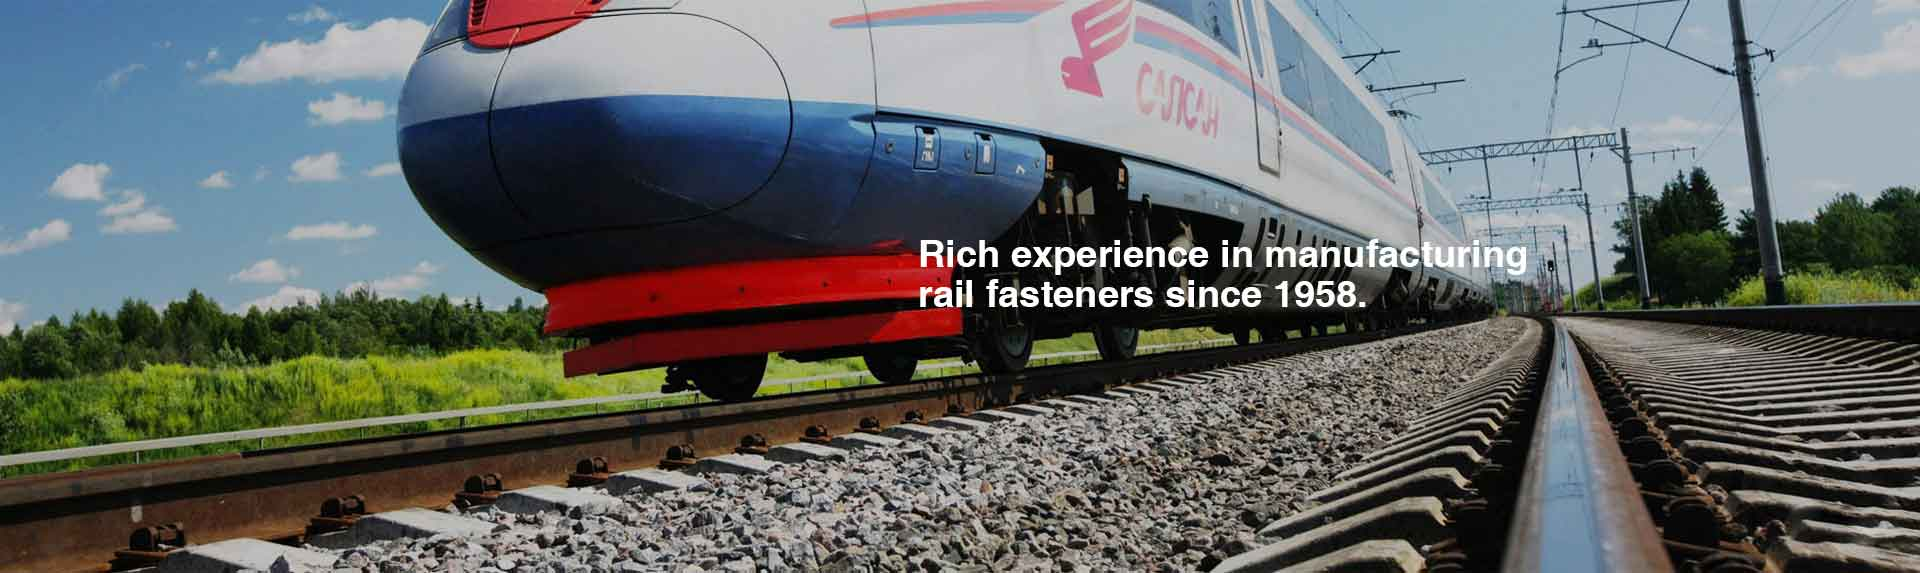 rich experience in rail fastener manufacturing since 1958